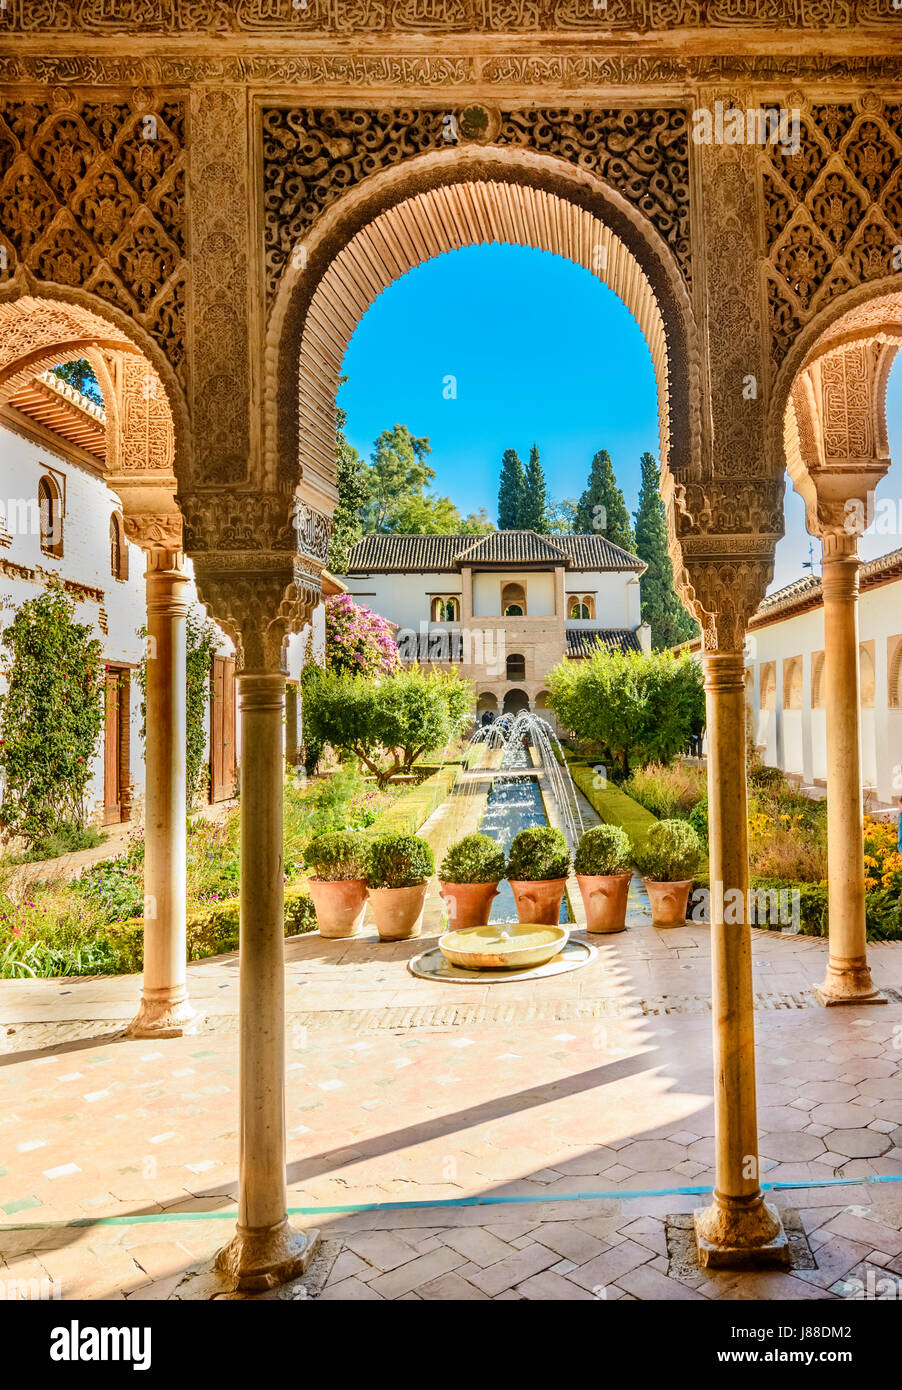 Courtyard of the Alhambra from Granada, Spain Stock Photo